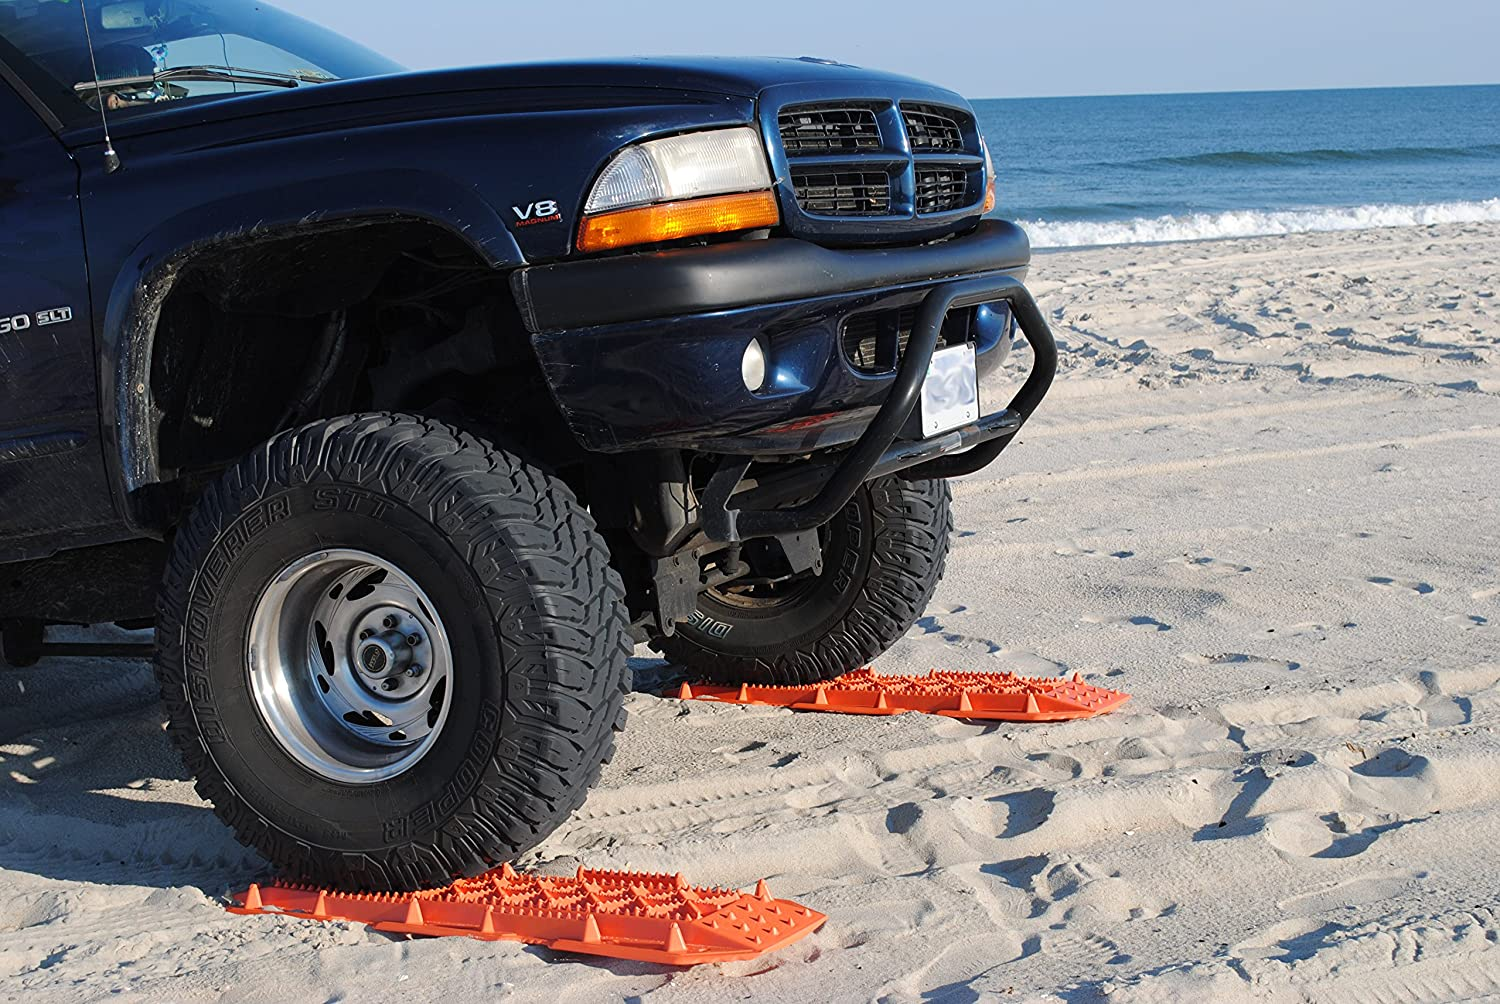 Off-Road Mud, Sand And Snow made our list of camper gifts that make perfect RV gifts which are unique gifts for RV owners